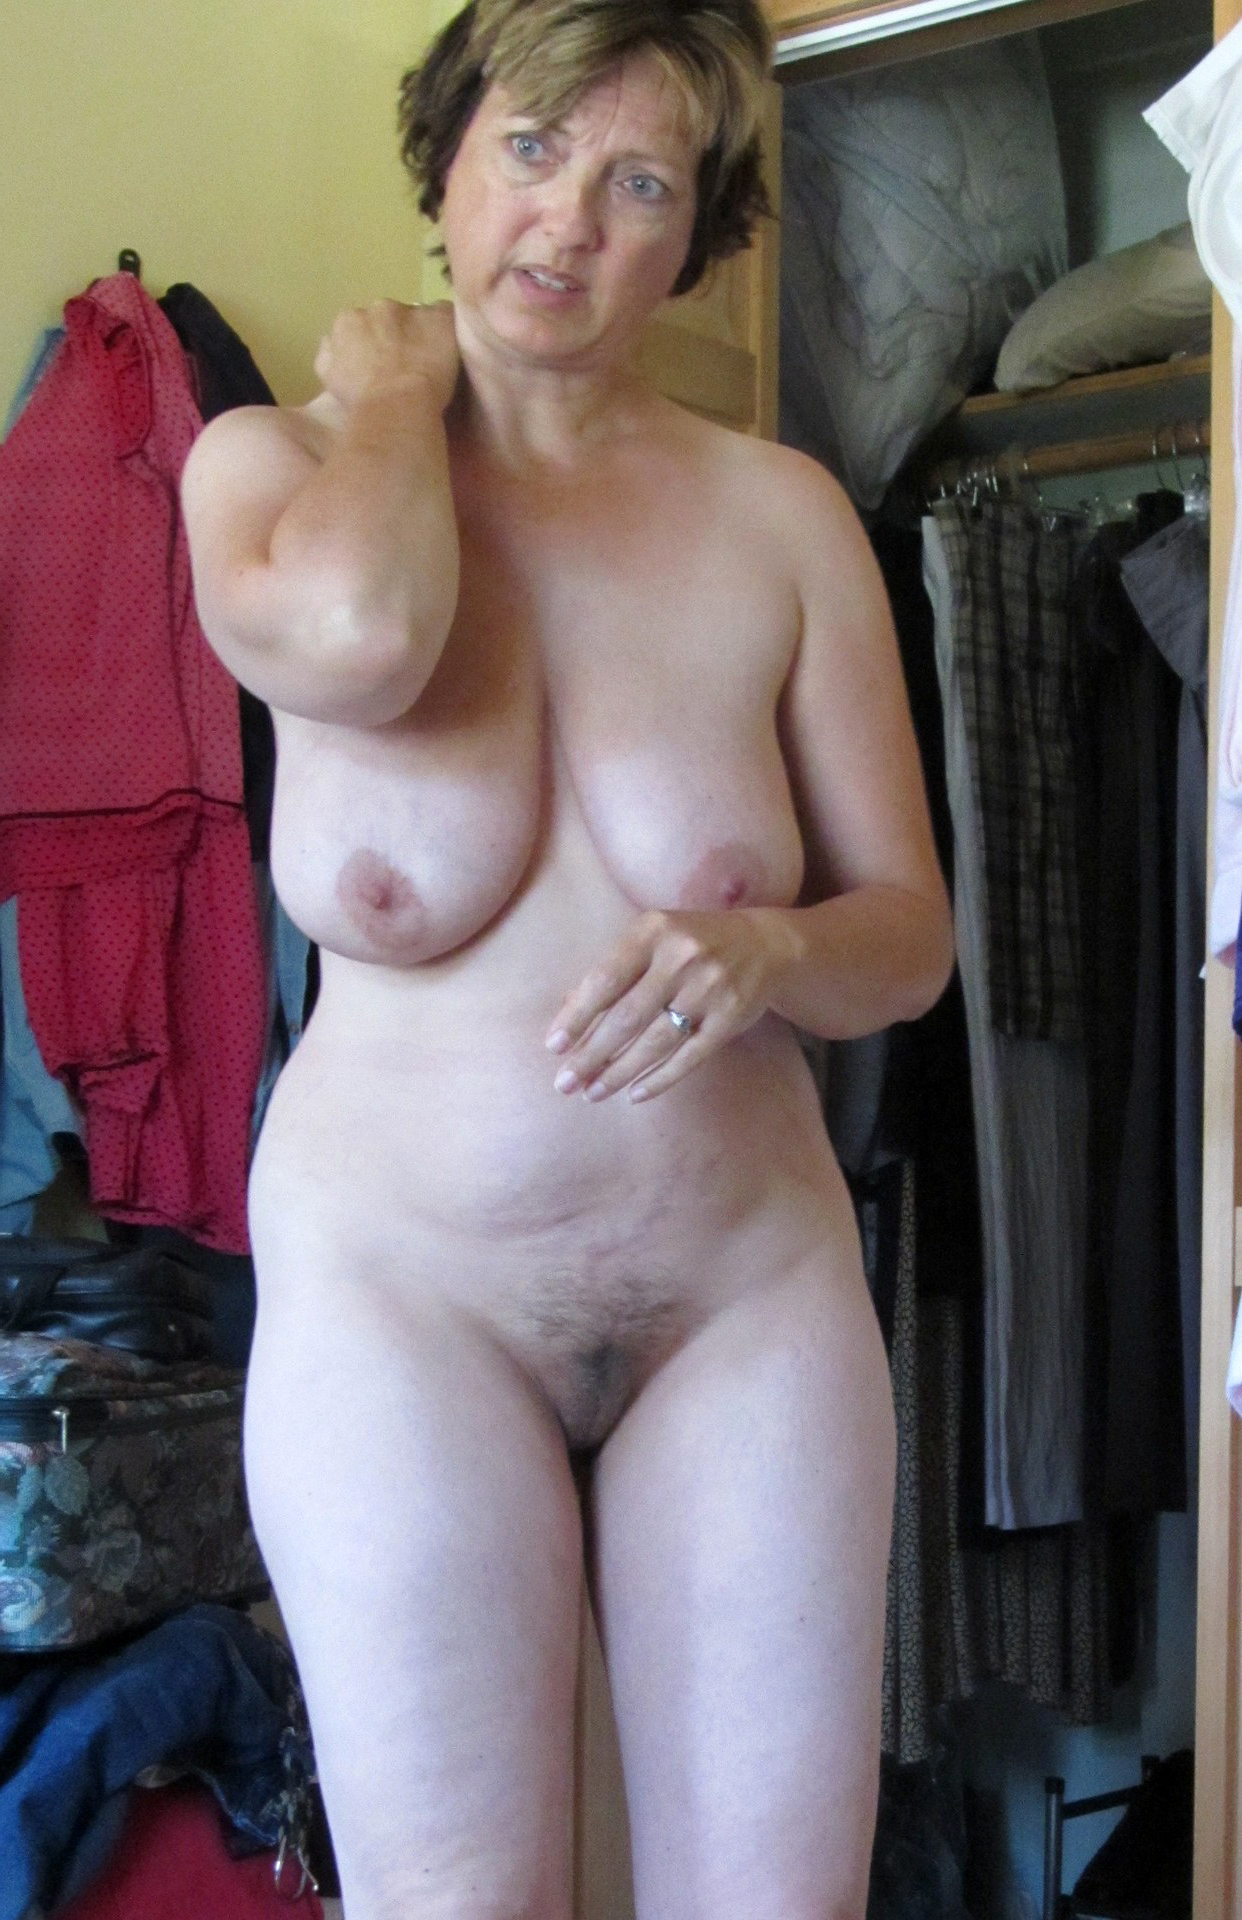 shaved hot nude woman